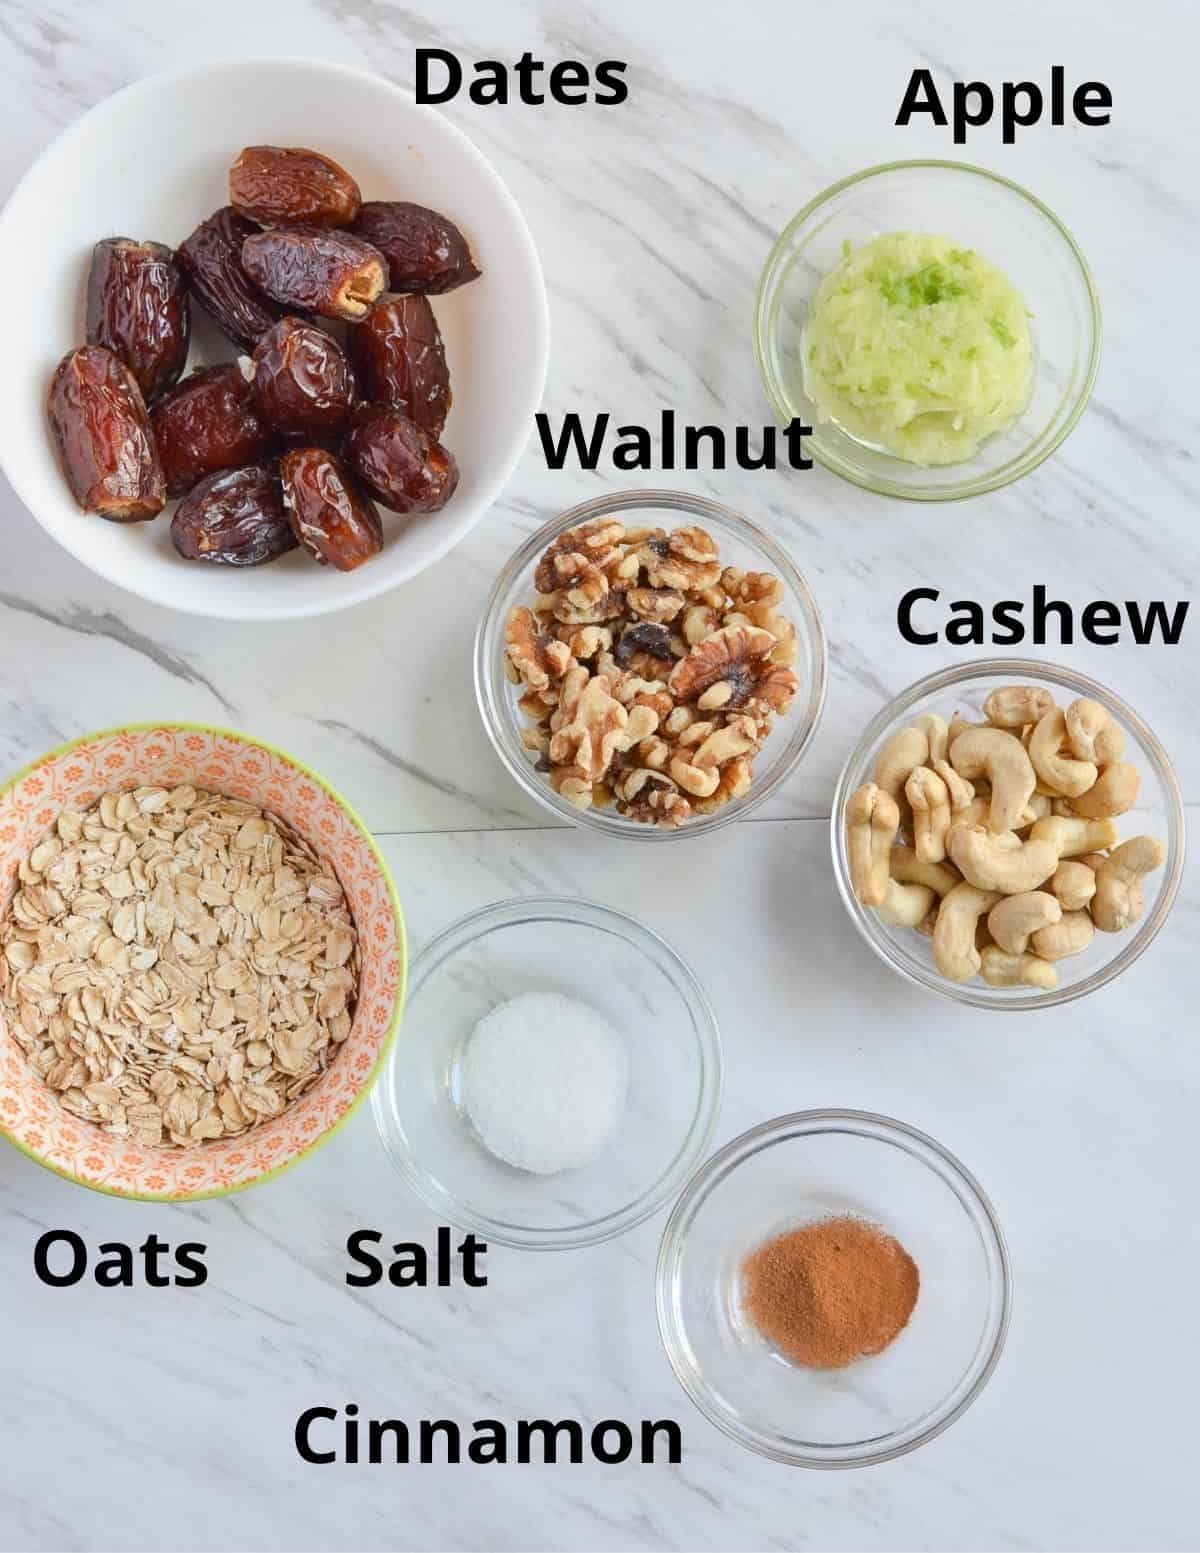 dates, shredded fresh apple, walnuts, cashews, rolled oats, salt, and cinnamon shown in the pic.